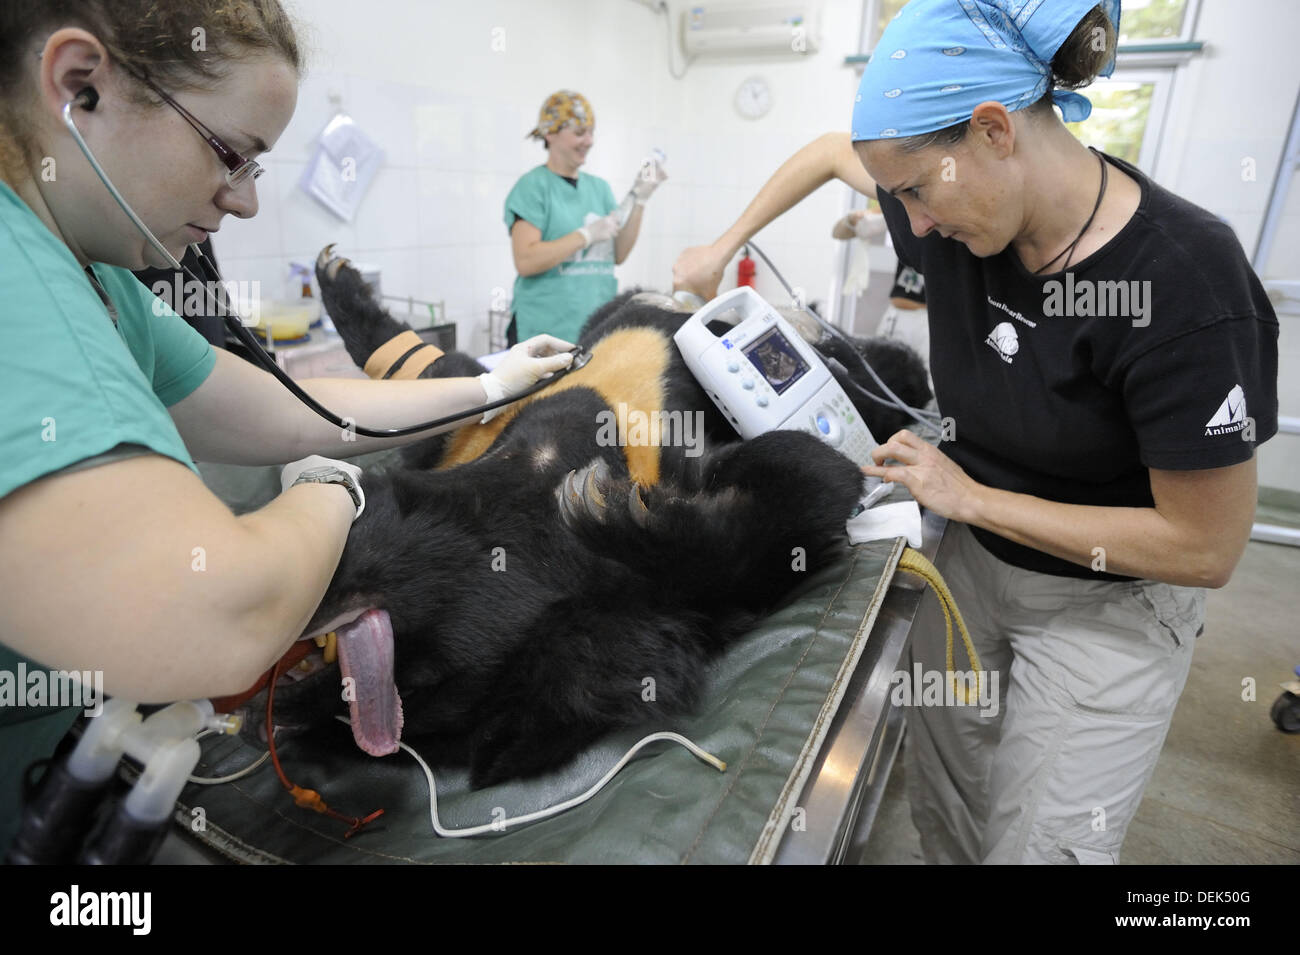 Surgery on Asiatic black bear (Ursus thibetanus) at the Chengdu rescue center of the Animal Asia Foundation, Sichuan, China - Stock Image